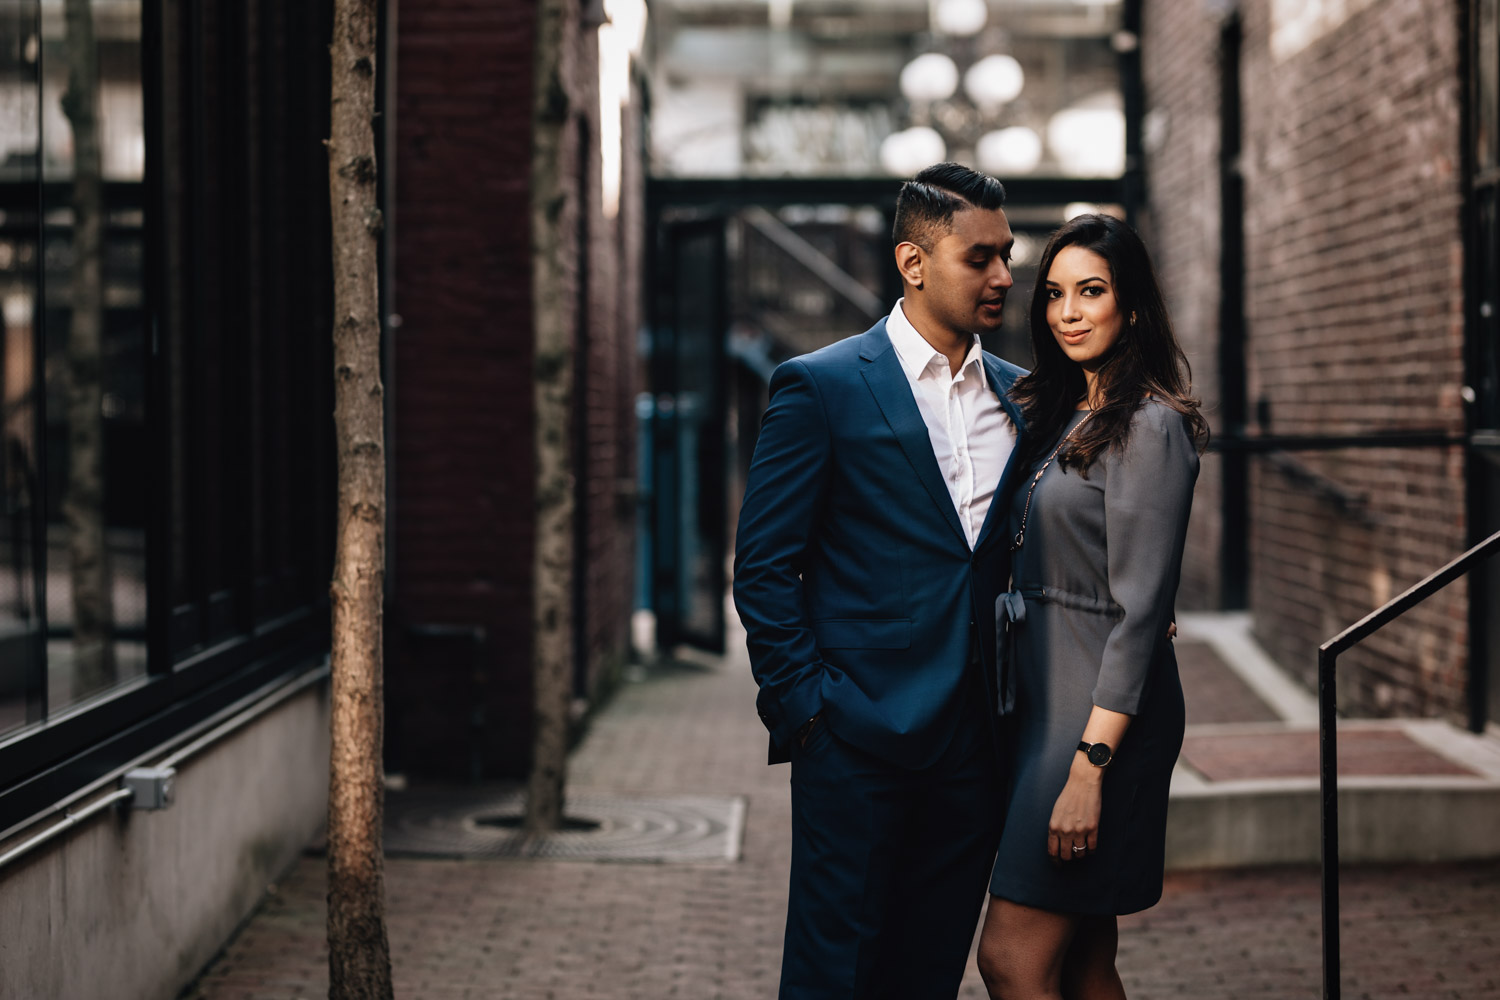 engagement photography gastown vancouver bc